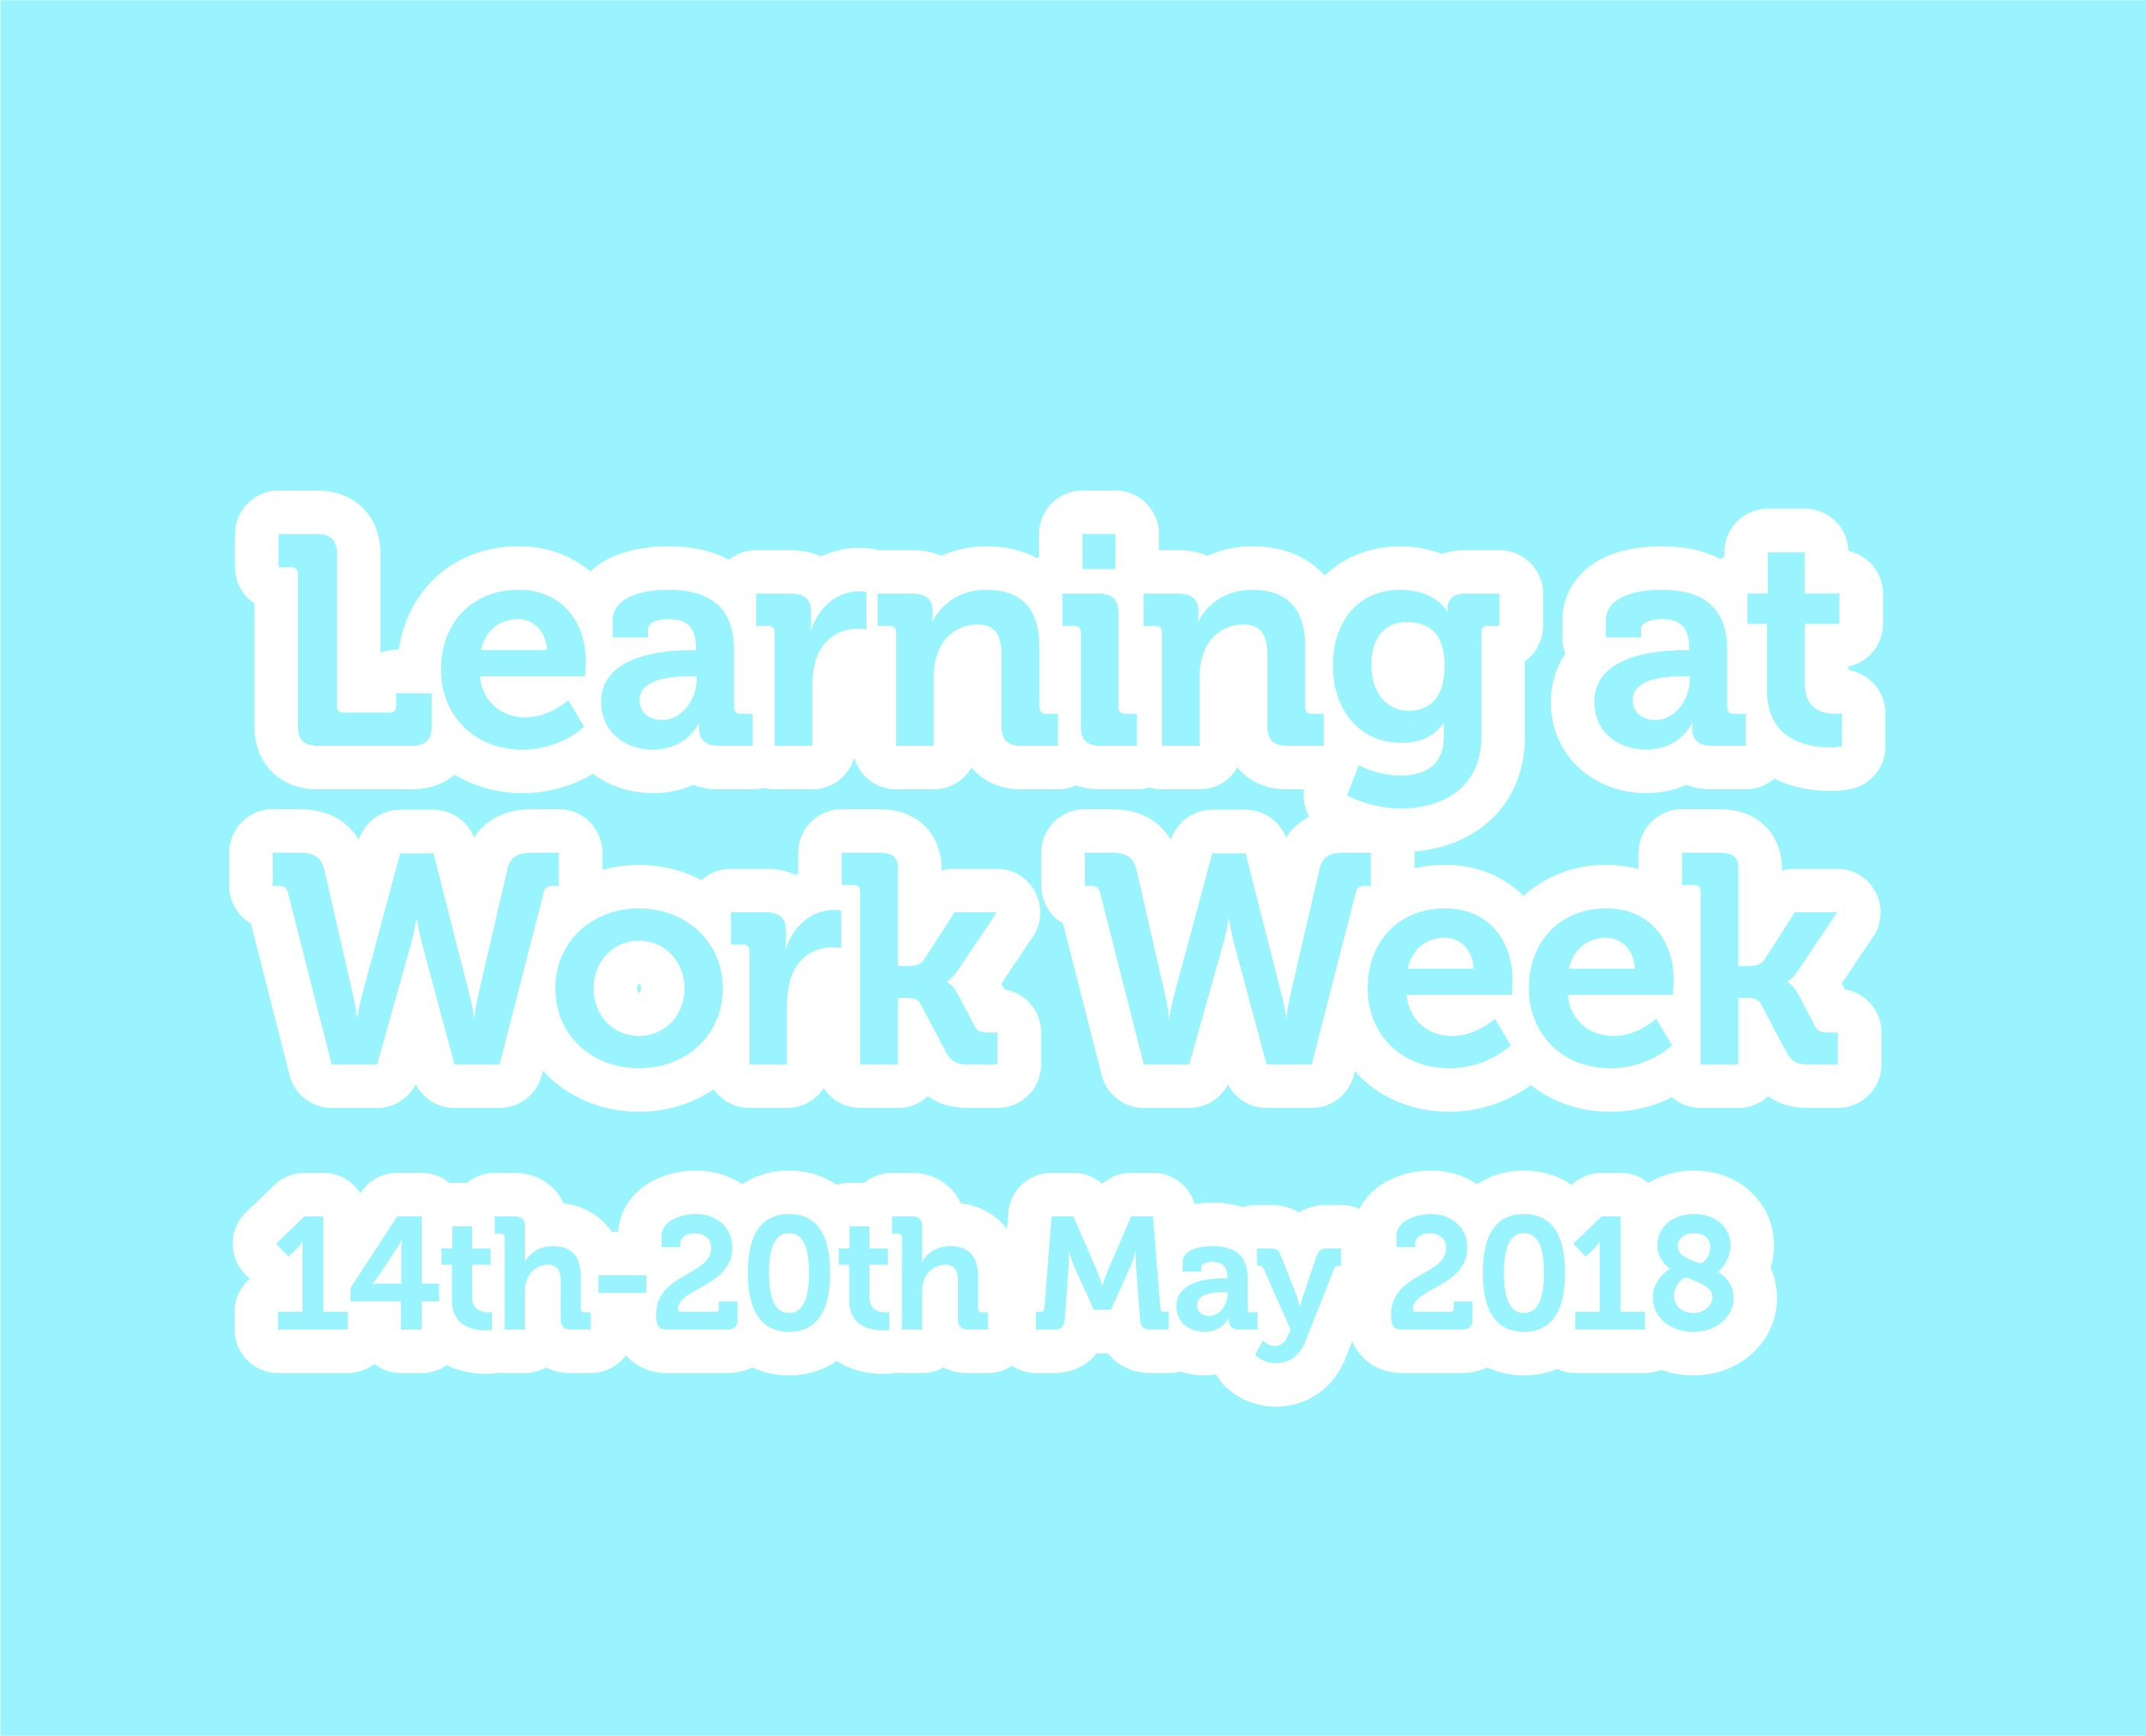 Campaign for Learning Learning at work week square logo